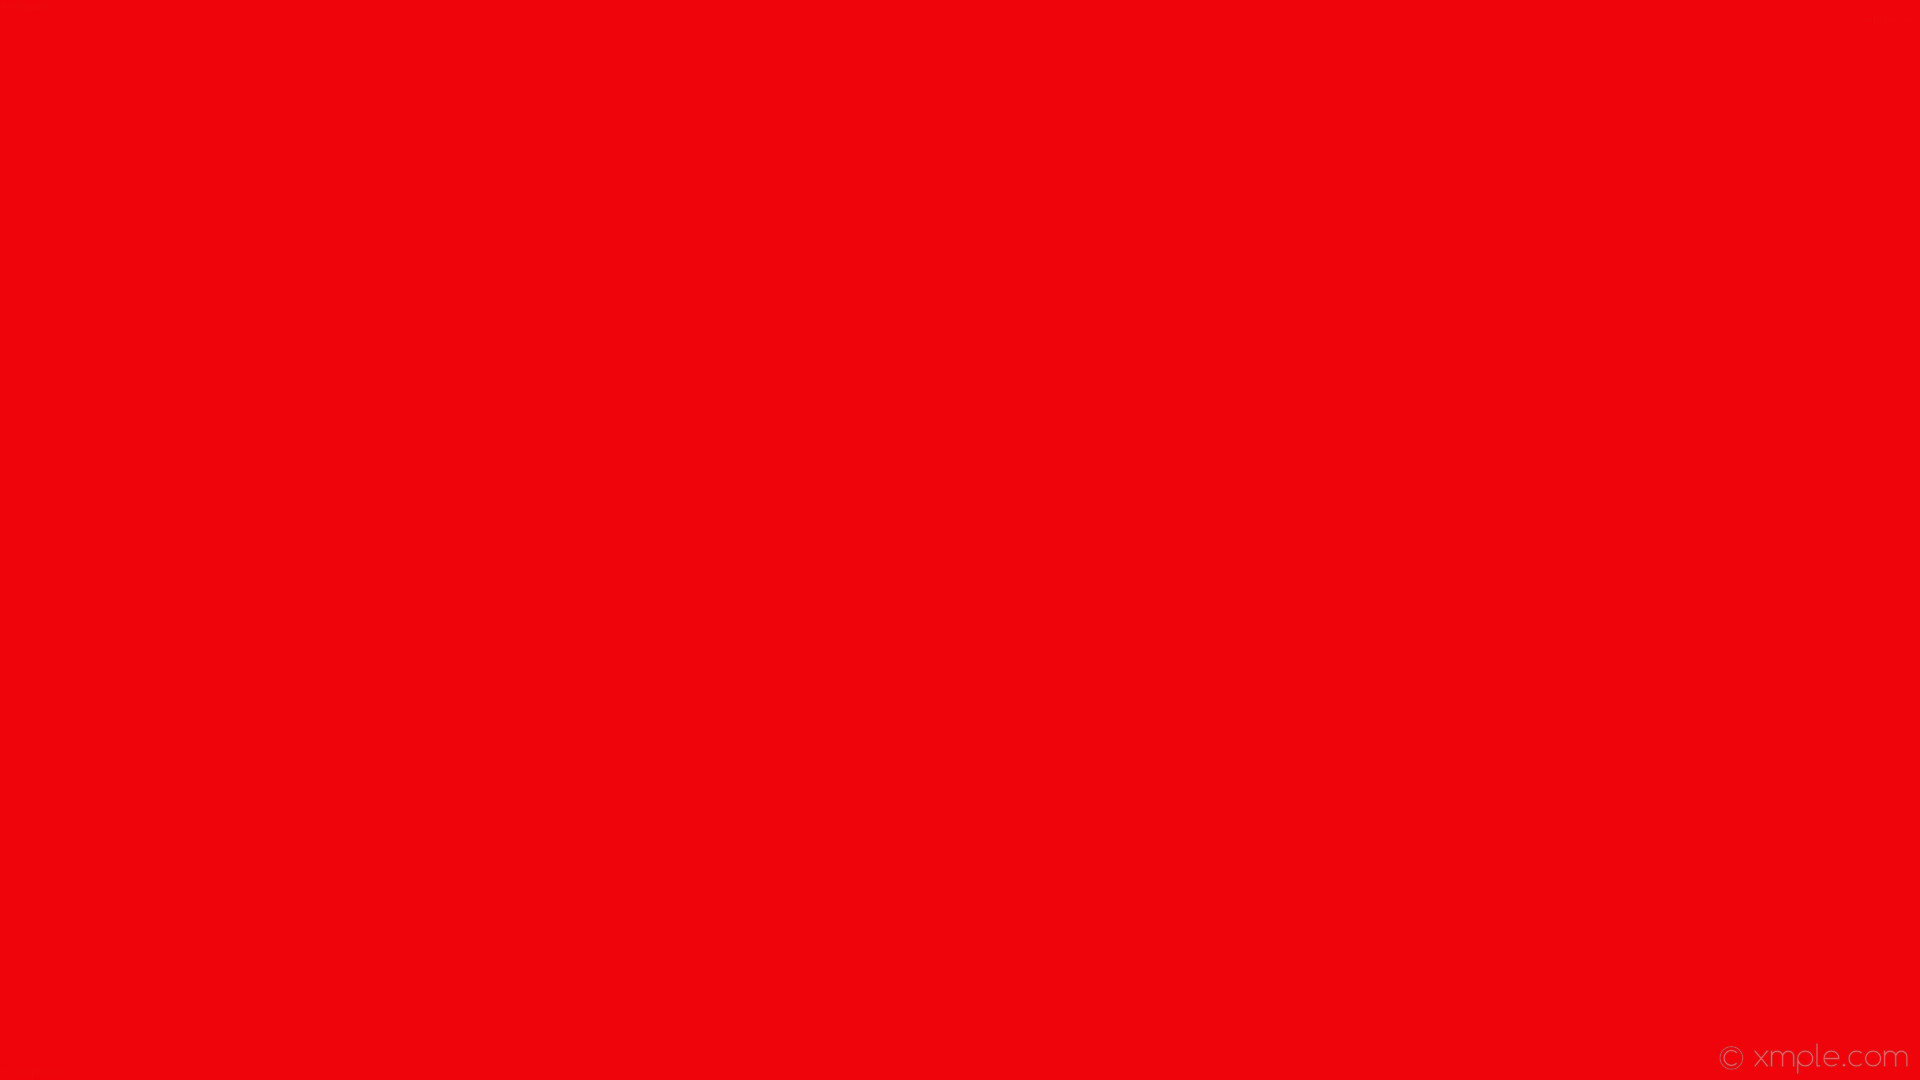 wallpaper plain solid color red one colour single #ee040a